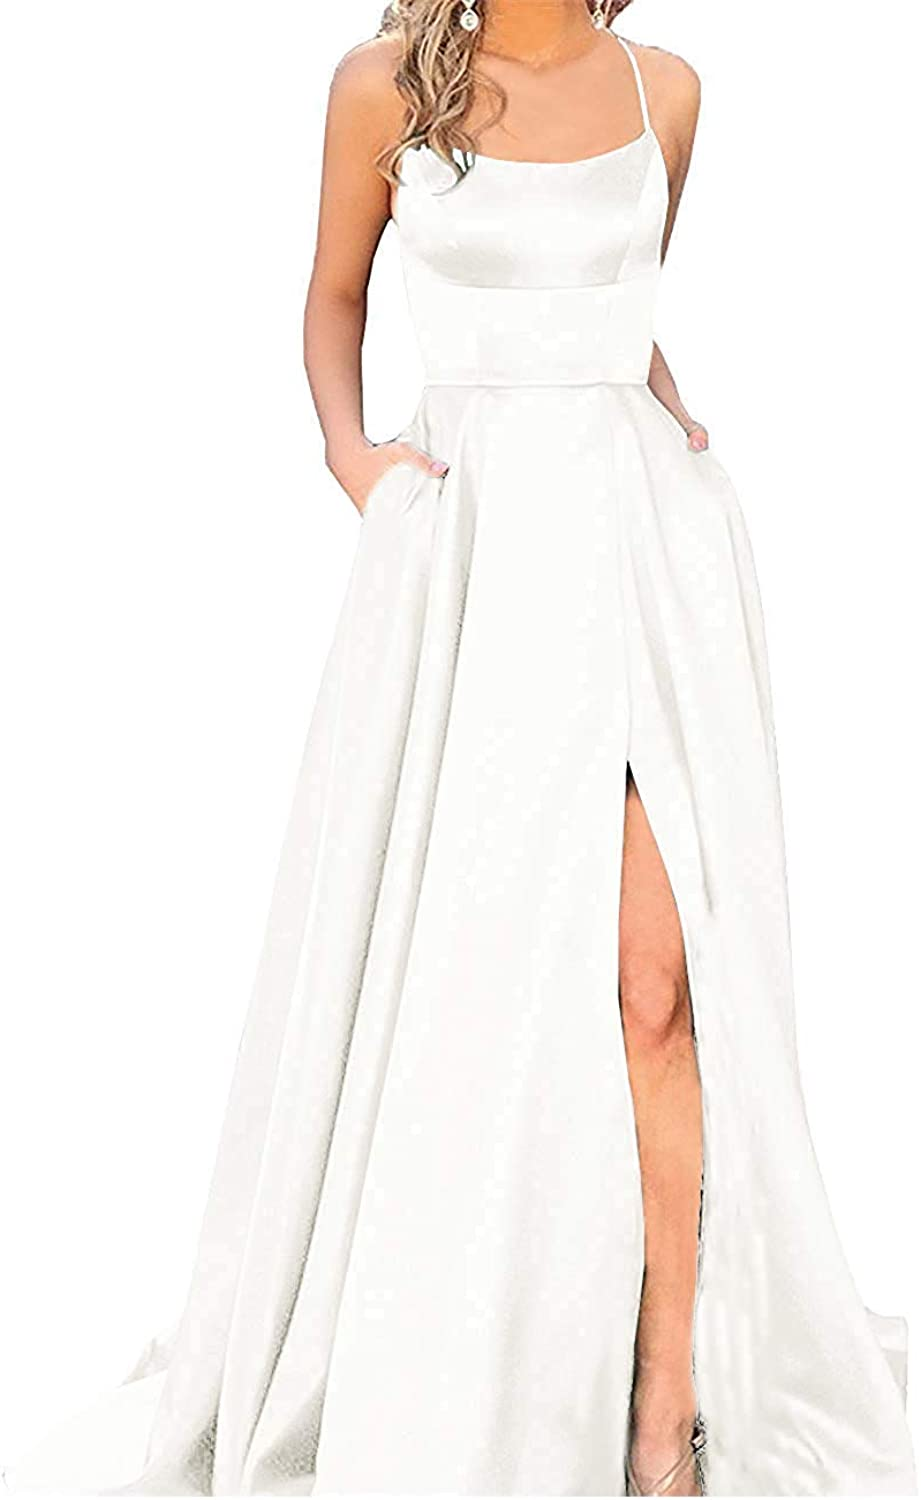 Tutu.vivi Women's 2019 Spaghetti Straps Satin Long Eveing Party Gowns Prom Dresses with Pockets